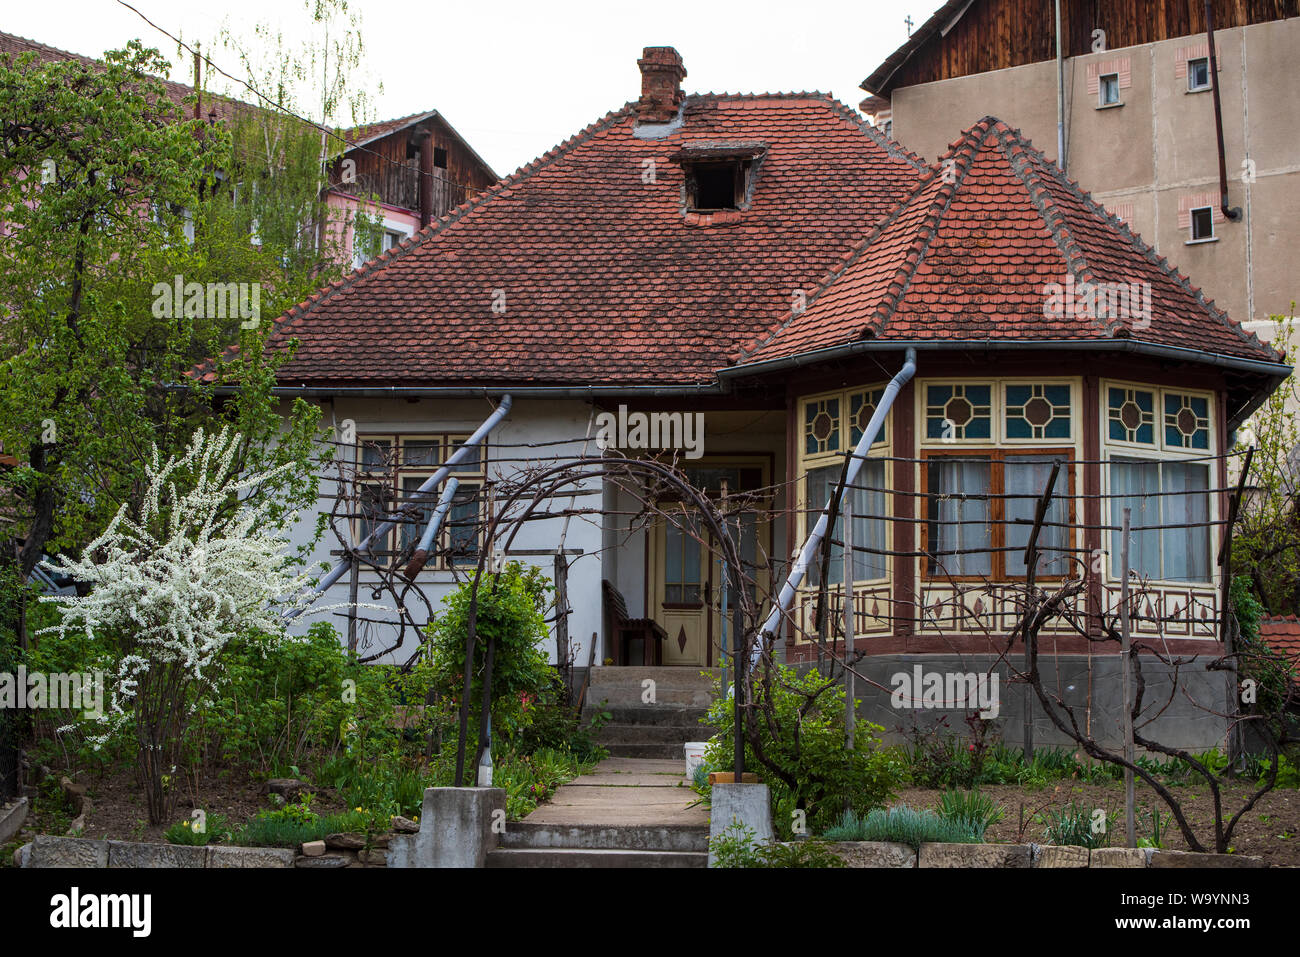 Beautiful Old House With Brick Red Roof Touched By Time And Amazing Windows And Design Stock Photo Alamy